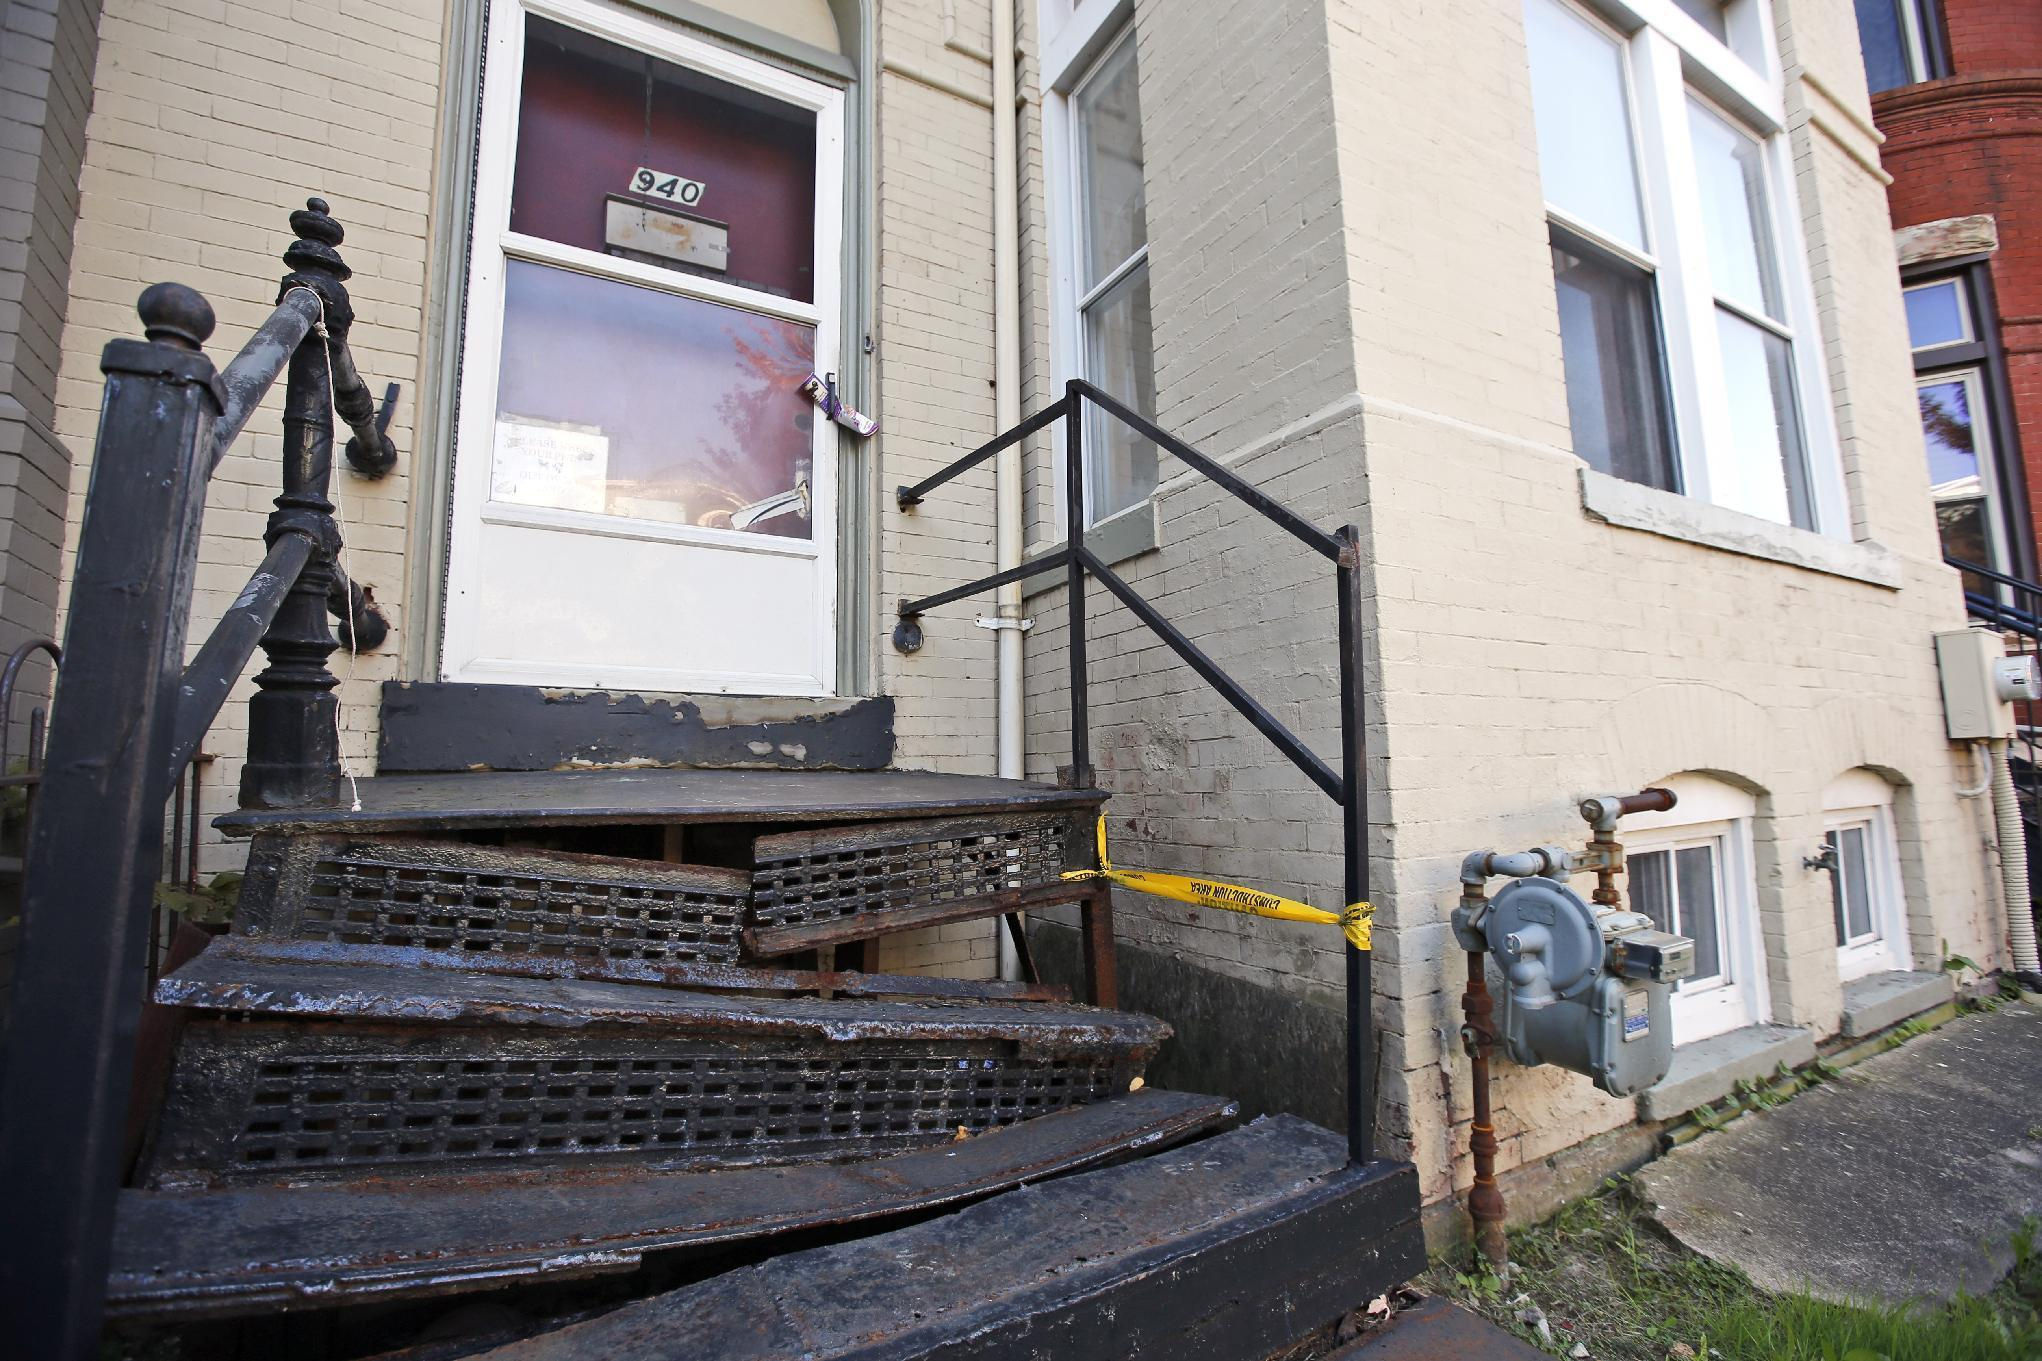 In DC, public housing tenants forced out, then homes flipped